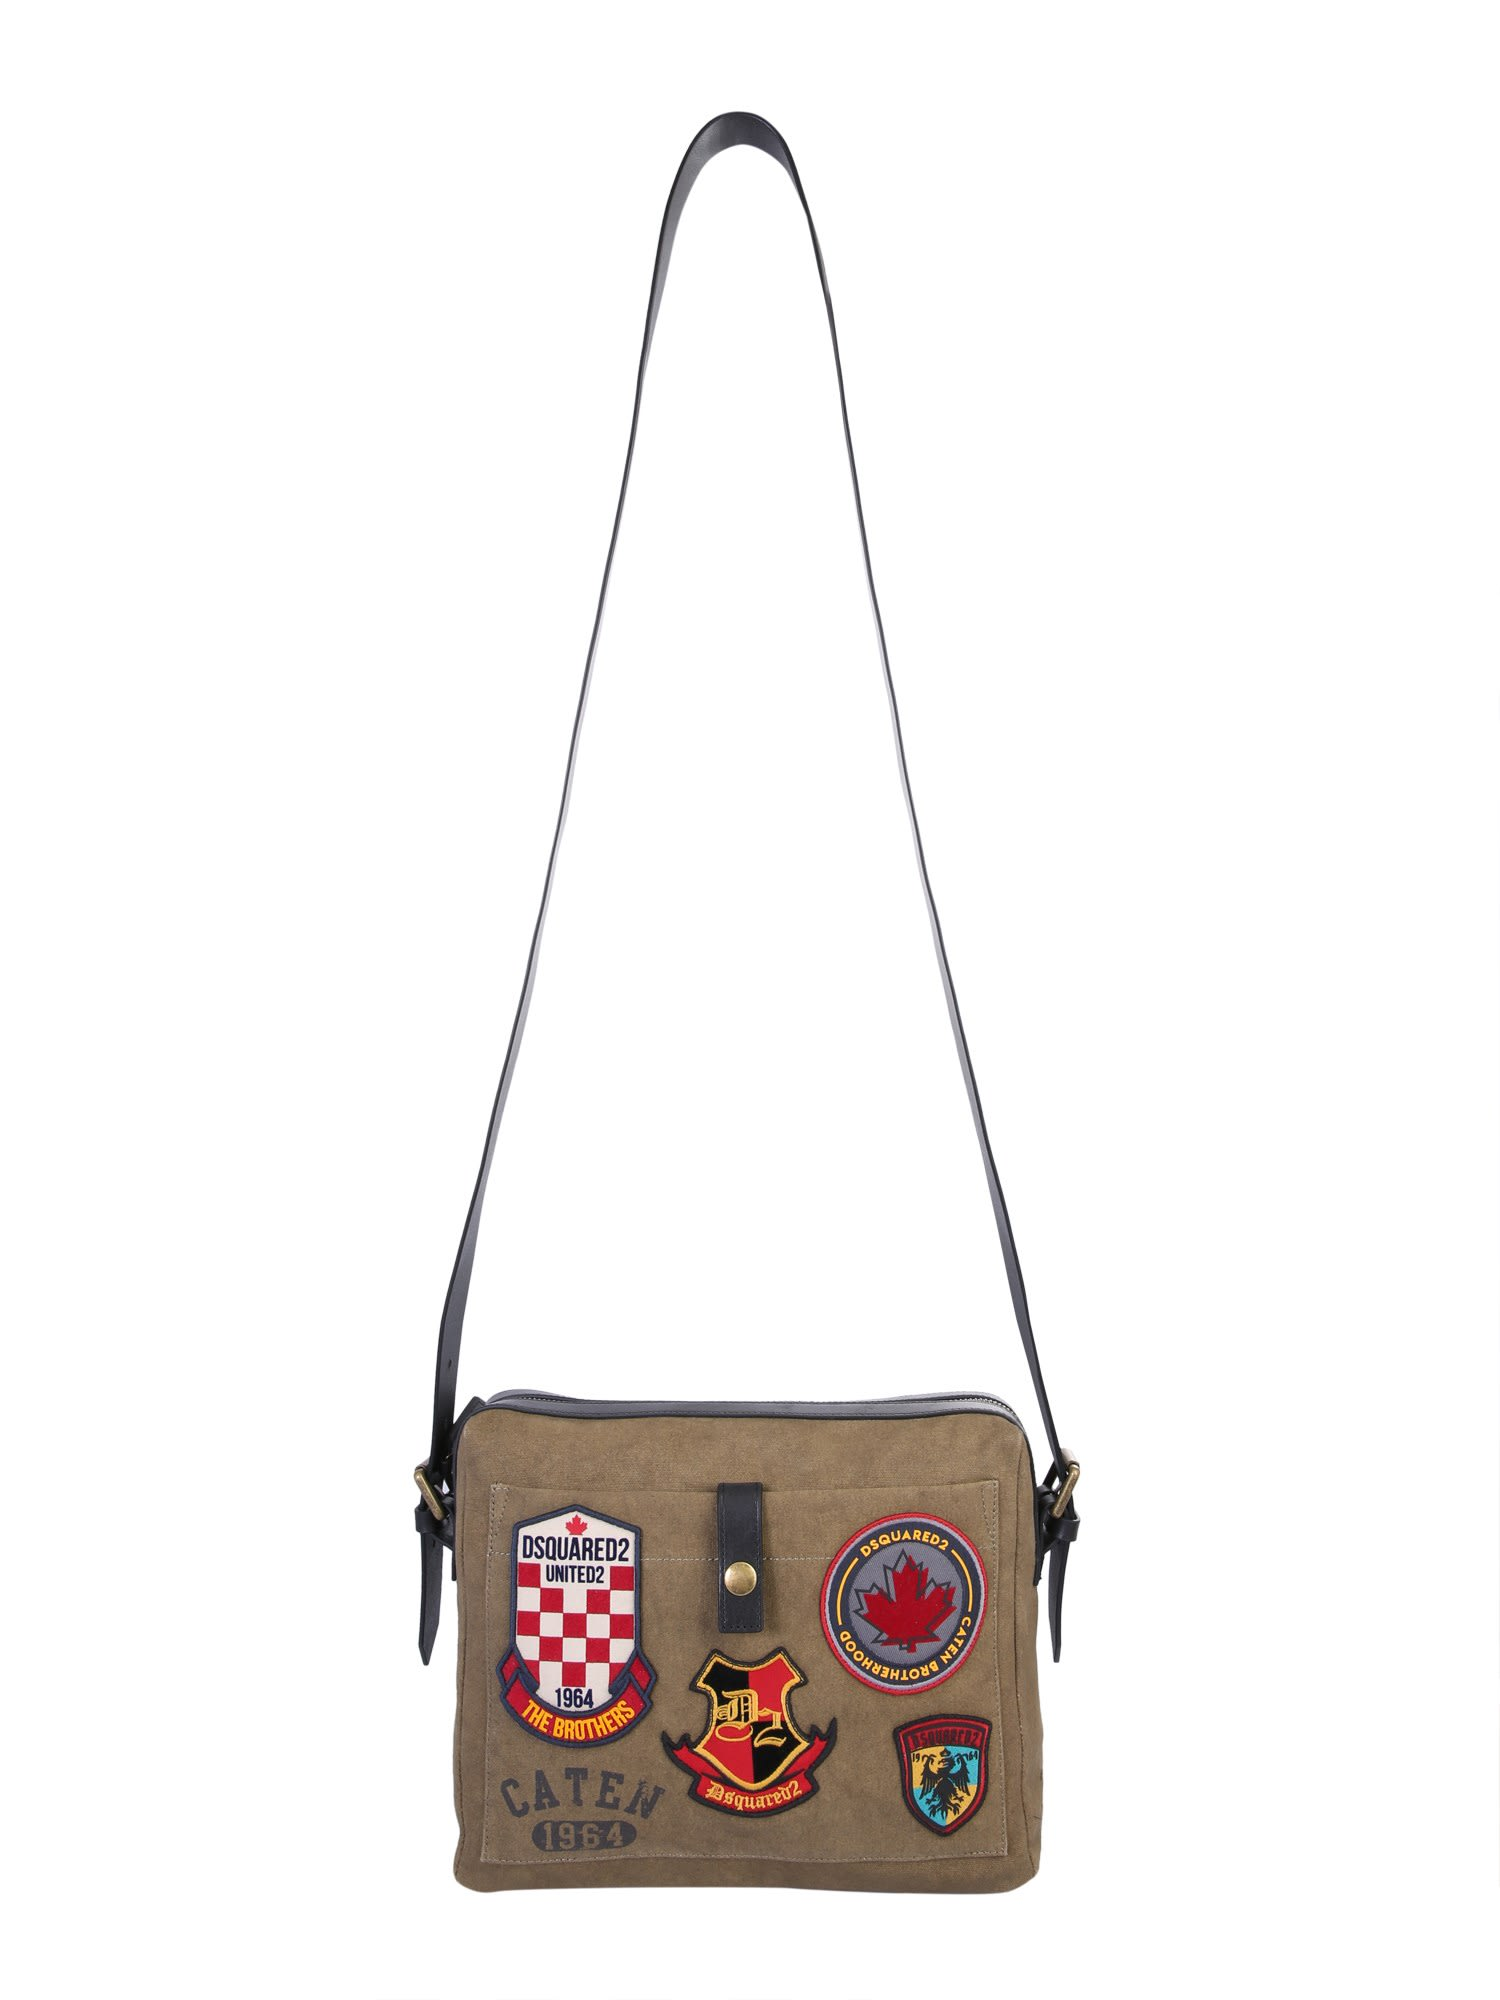 Dsquared2 BAG WITH LOGO